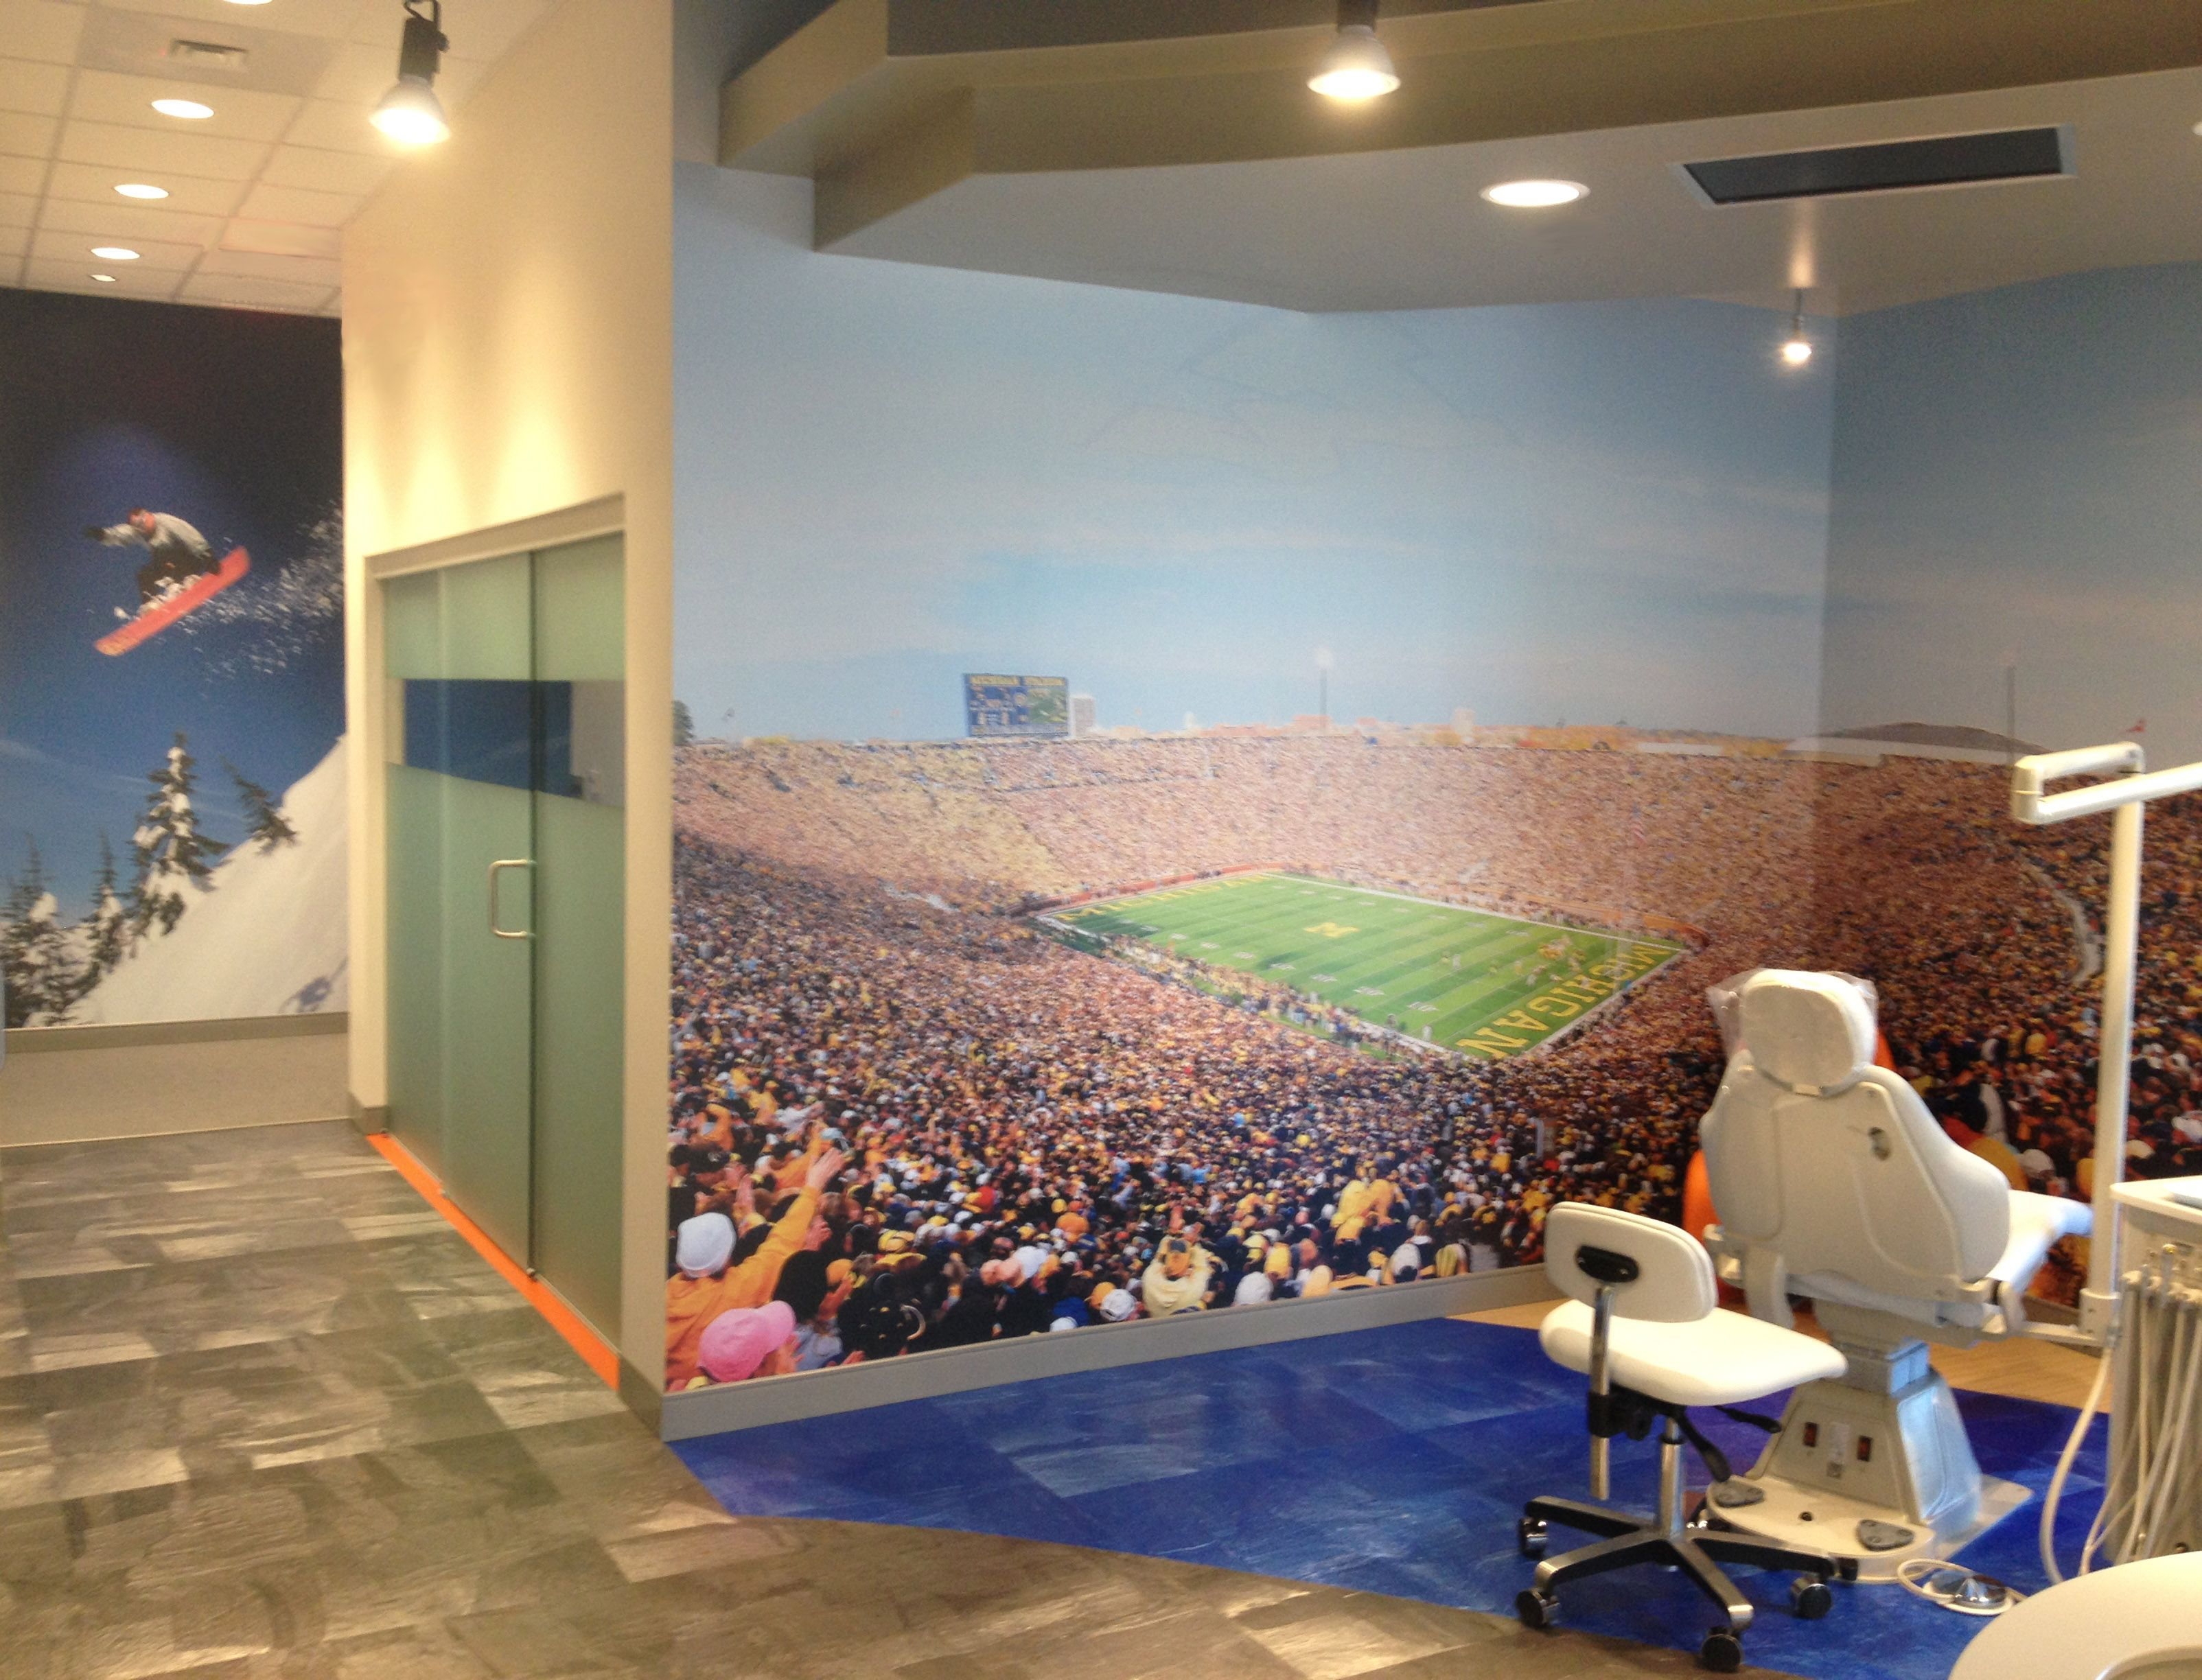 Sports wall murals in orthodontic office Lineberger Orthodontics